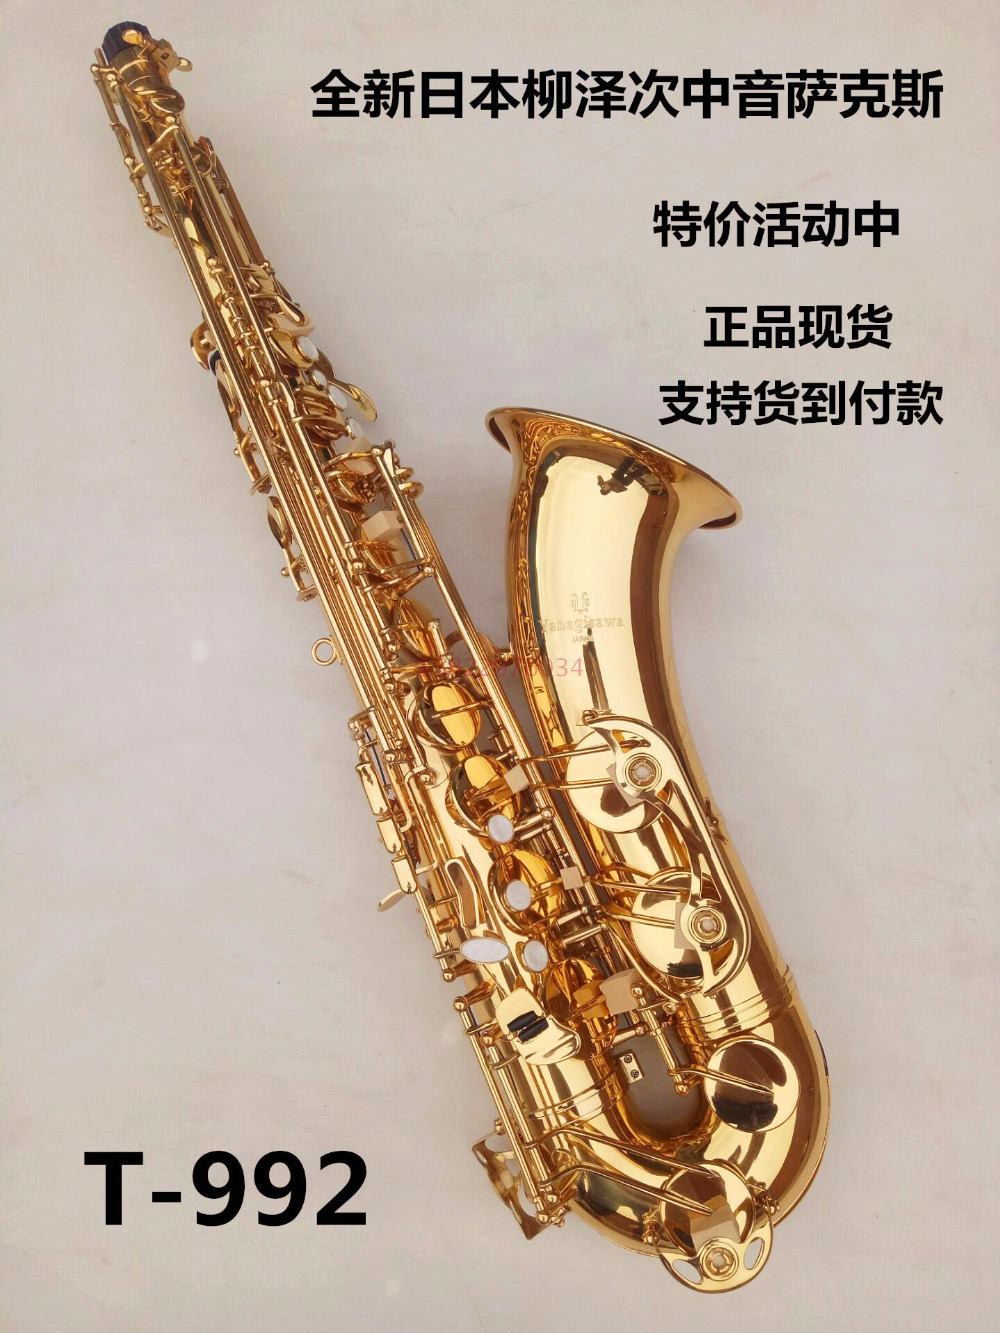 Yanagisawa YANAGISAWA new T-992 B flat tenor saxophone playing professionally shipping japan yanagisawa new t 992 b flat tenor saxophone top musical instrument tenor saxophone performances shipping